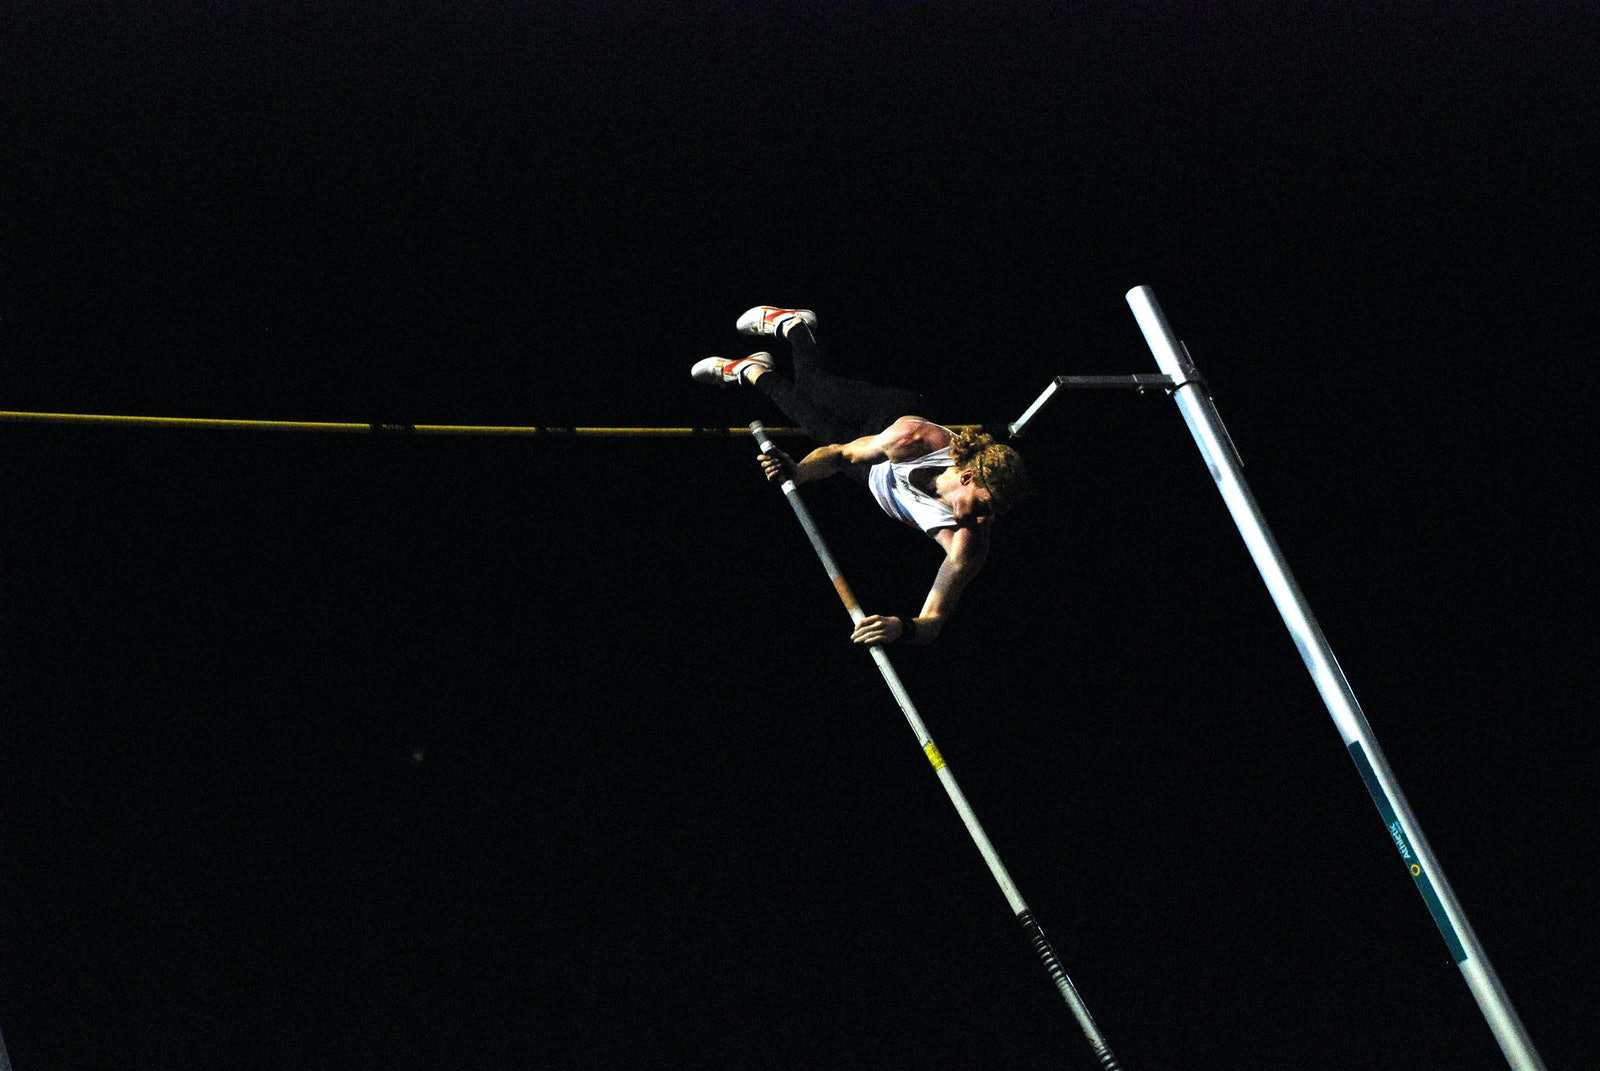 Hooker - Steve Hooker during a successful attempt at 5.95m at the 2009 Sydney Track Classic.